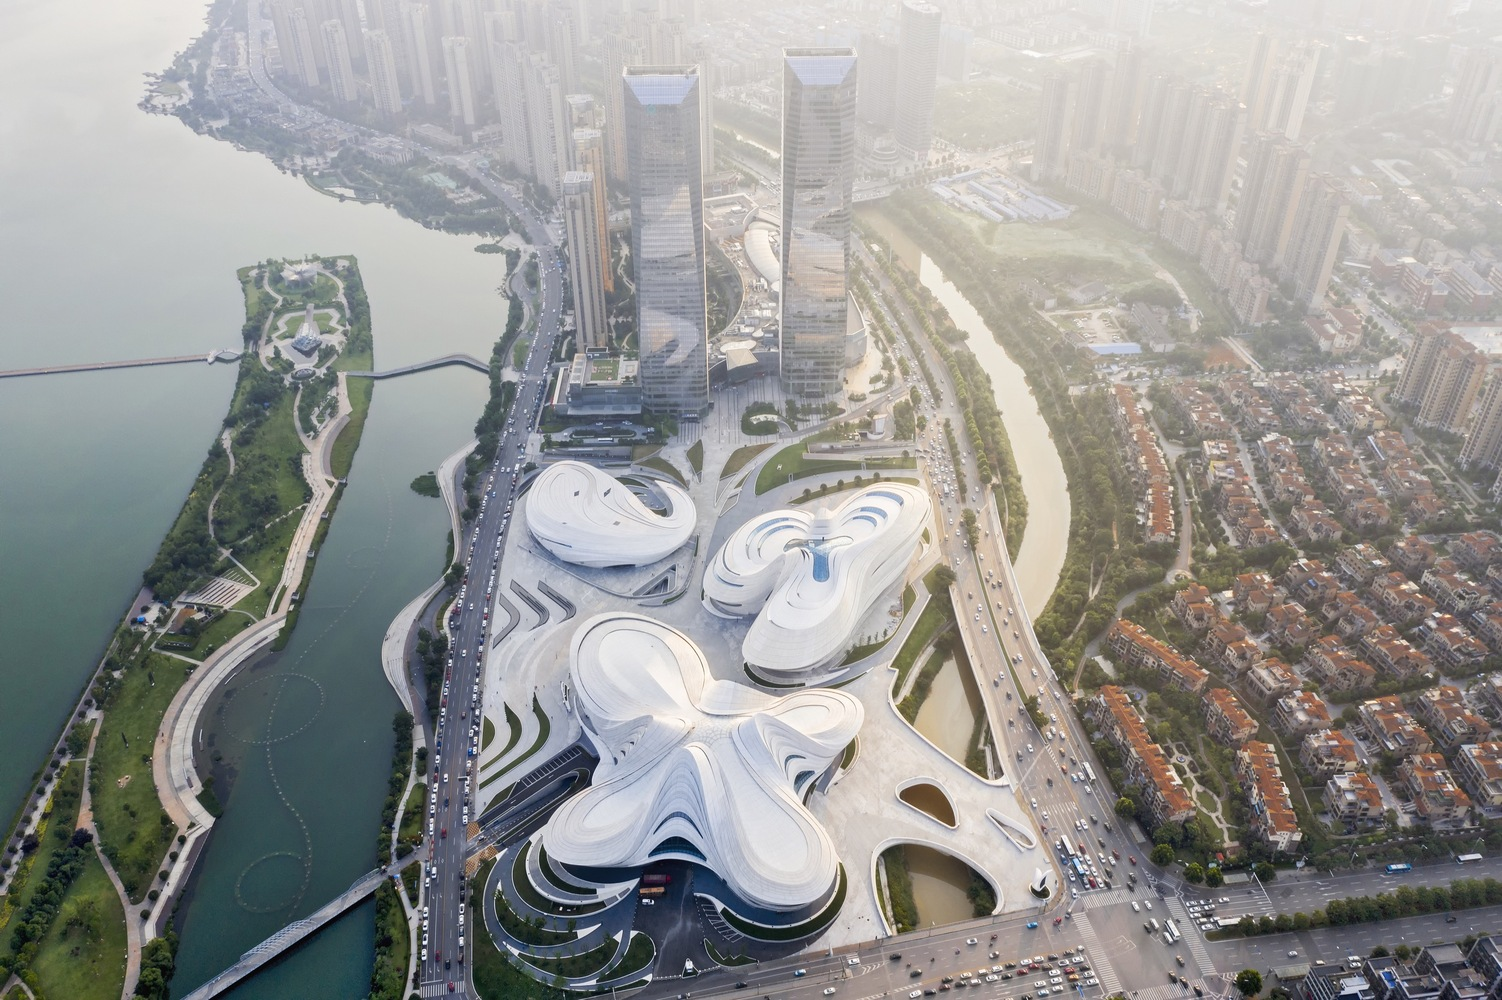 15_Changsha Meixihu International Culture and Art Centre_Zaha Hadid Architects_Inspirationist